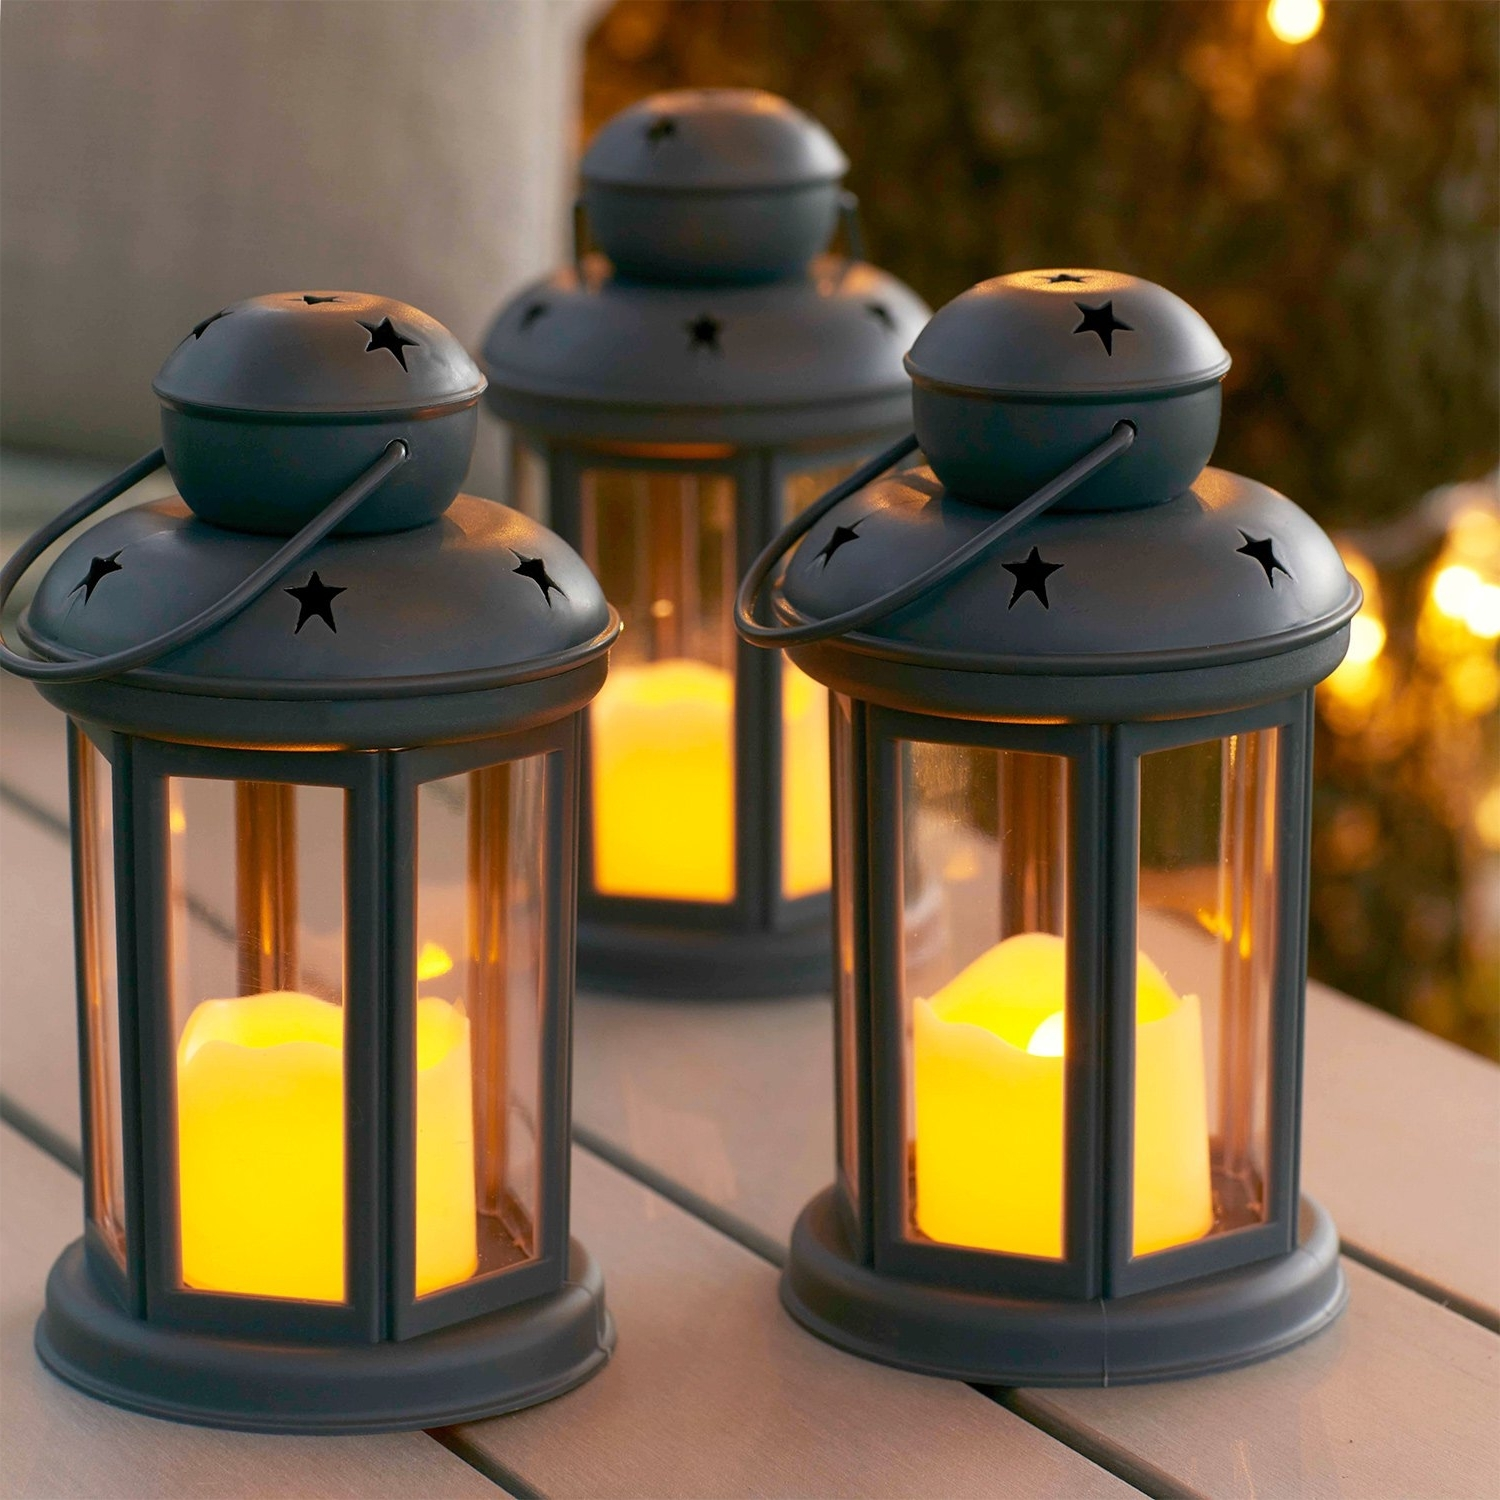 Set Of 3 Outdoor Lanterns Intended For Most Recently Released Lights4Fun, Inc.: Set Of 3 Grey Battery Operated Led Flameless (Gallery 15 of 20)